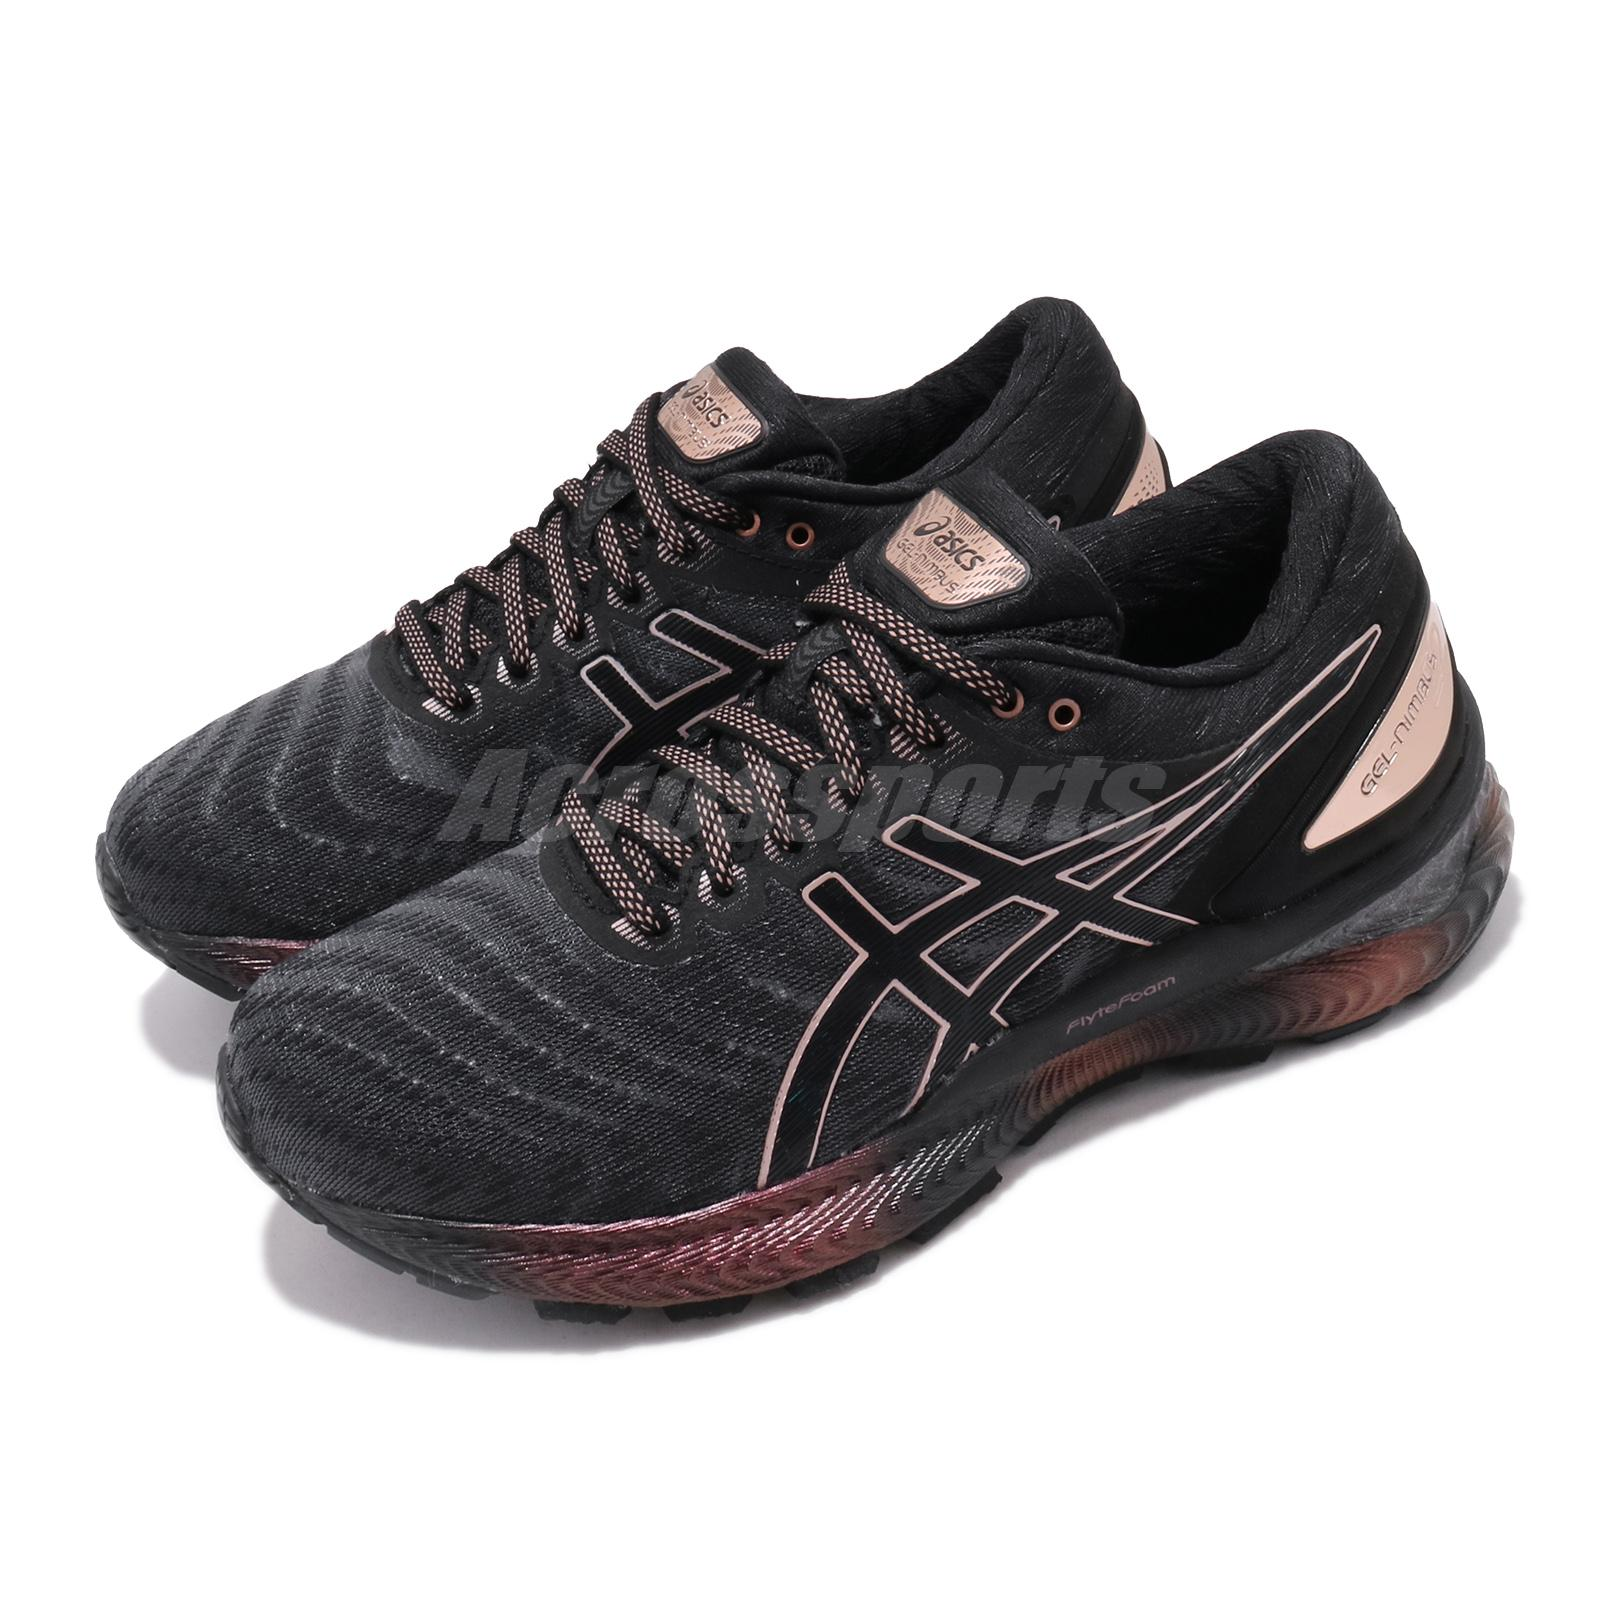 Details about Asics Gel-Nimbus 22 Platinum Black Rose Gold Womens Running  Shoes 1012A664-001